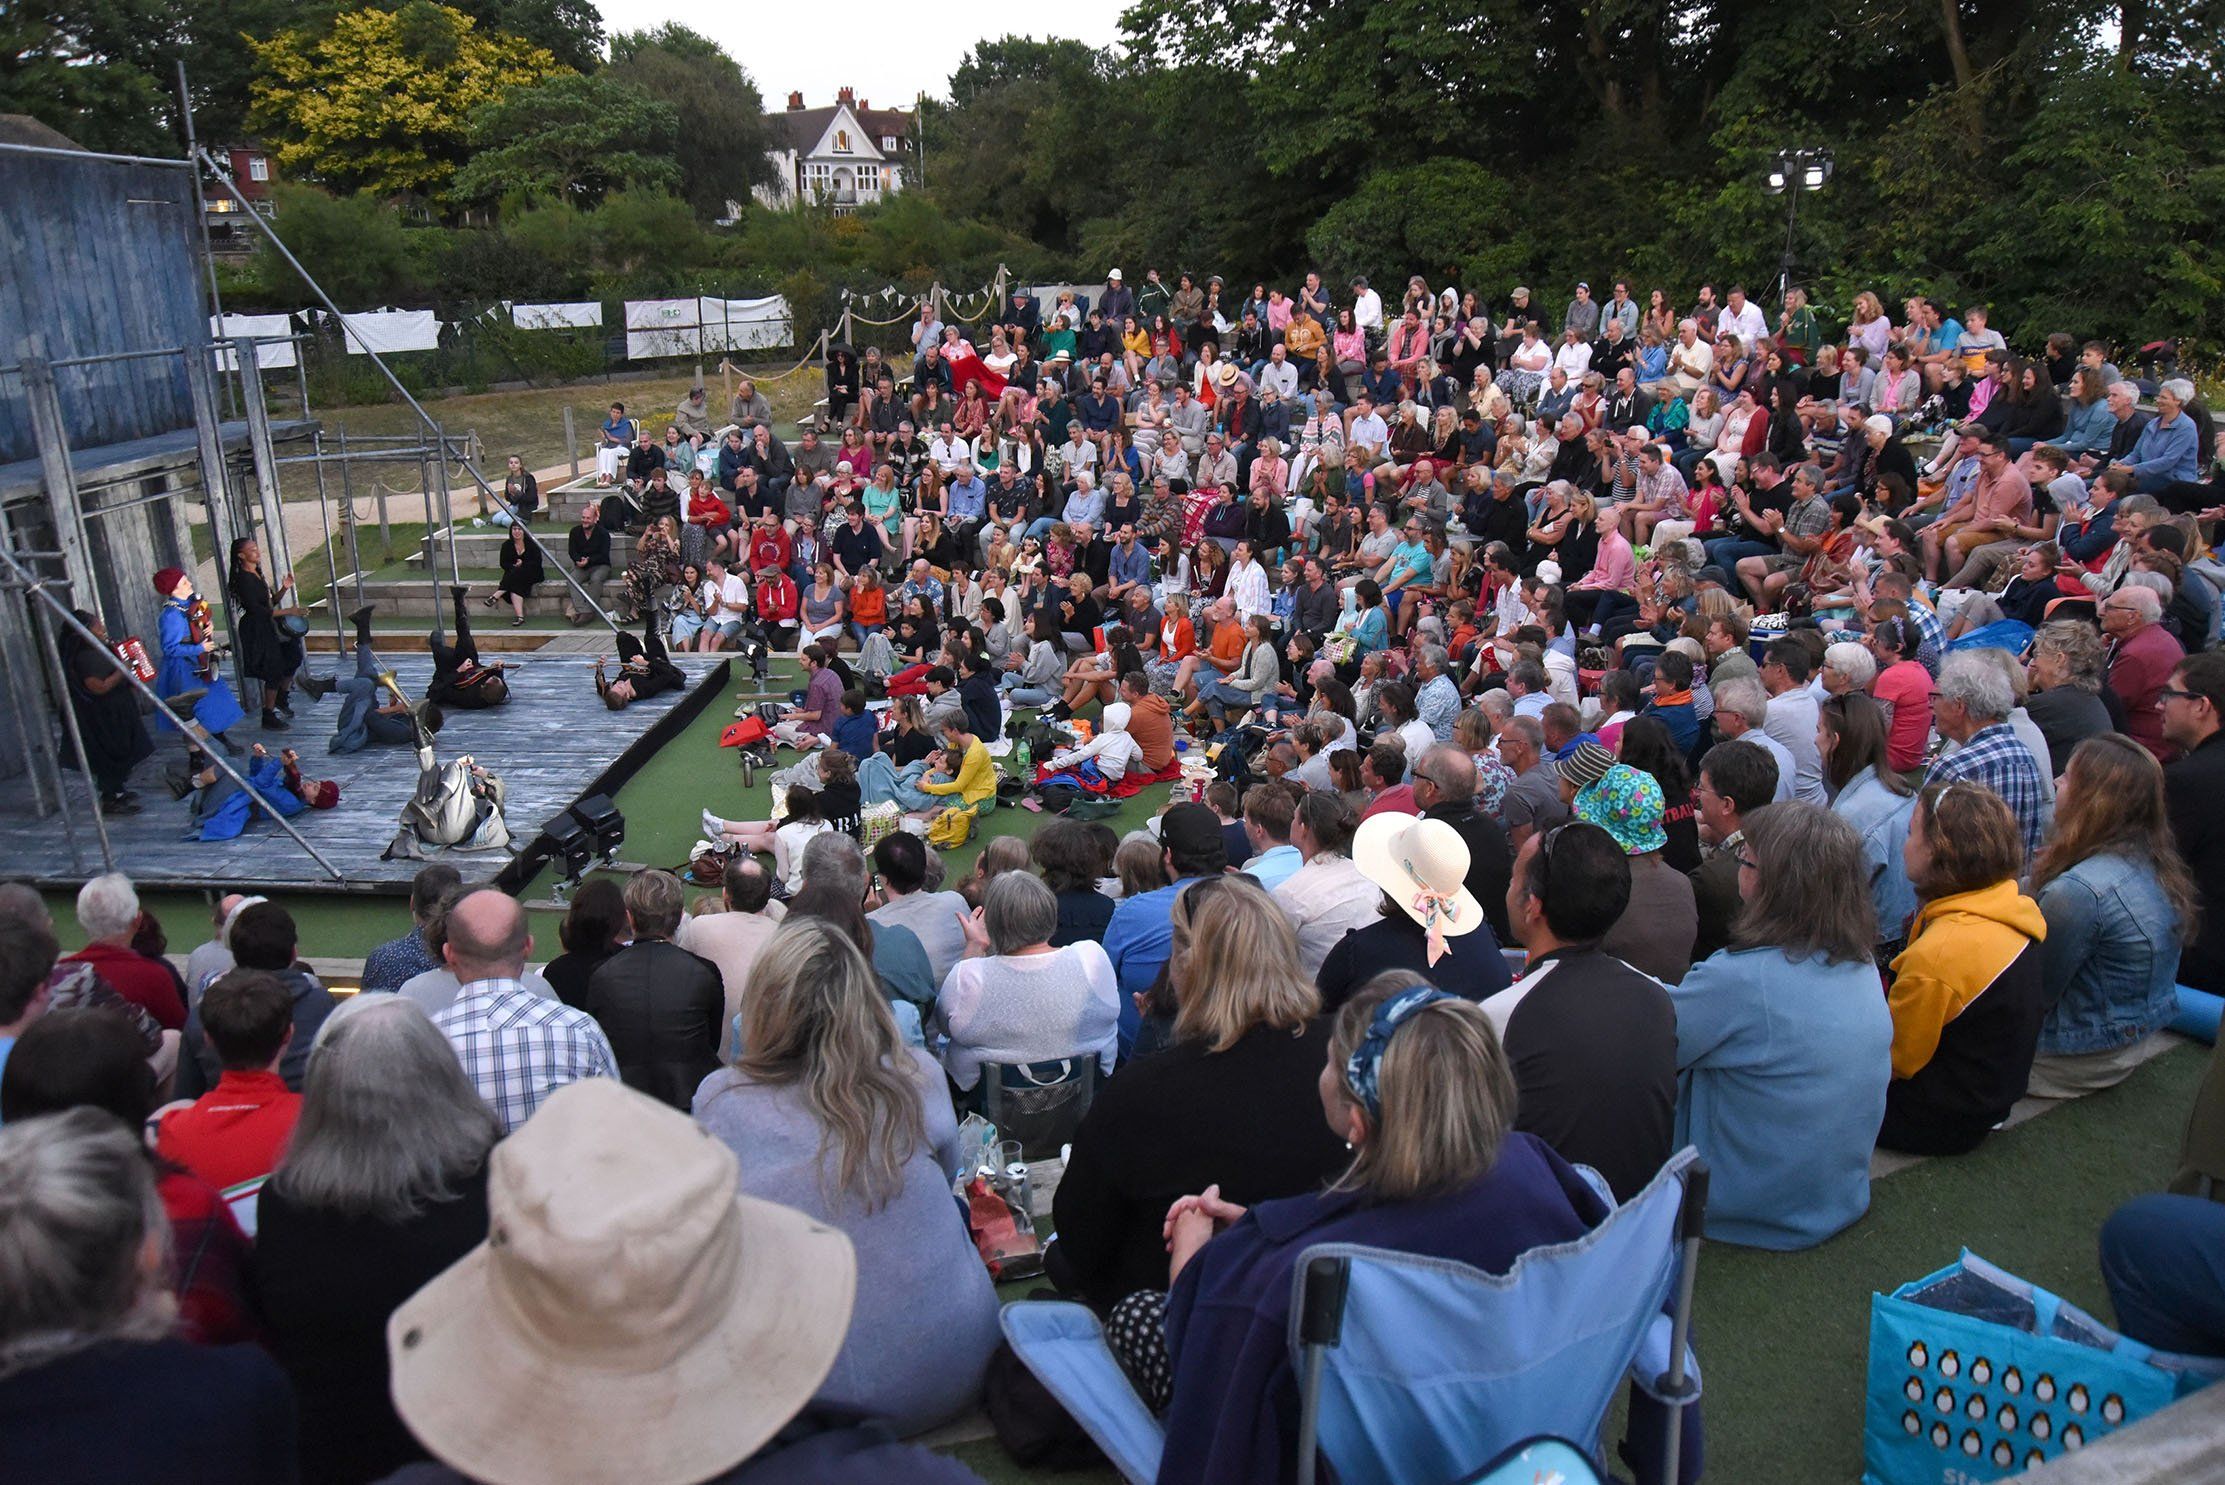 With a varied calendar of events, Brighton Open Air Theatre has announced its programme for Fri 1 May – Sun 27 Sept2020